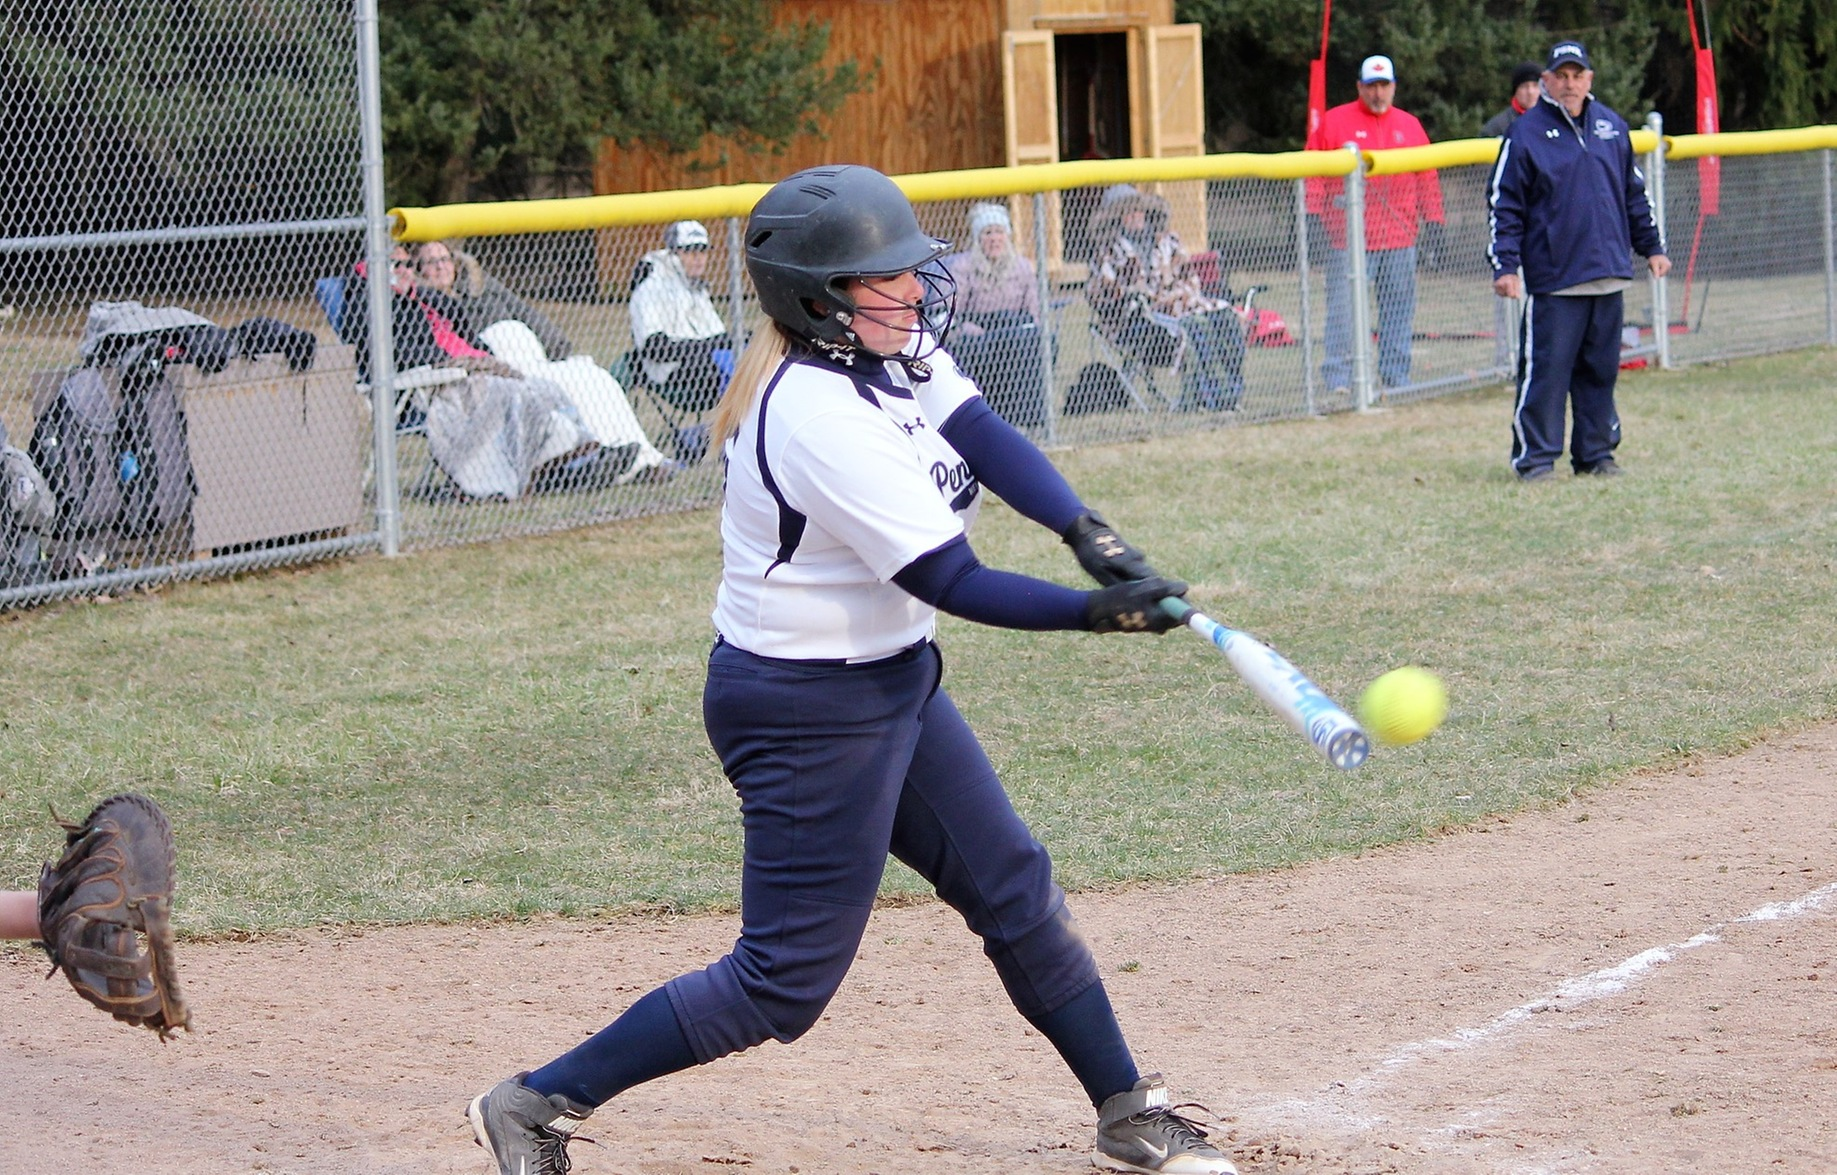 New Kensington Softball Faces Loss in Two Games